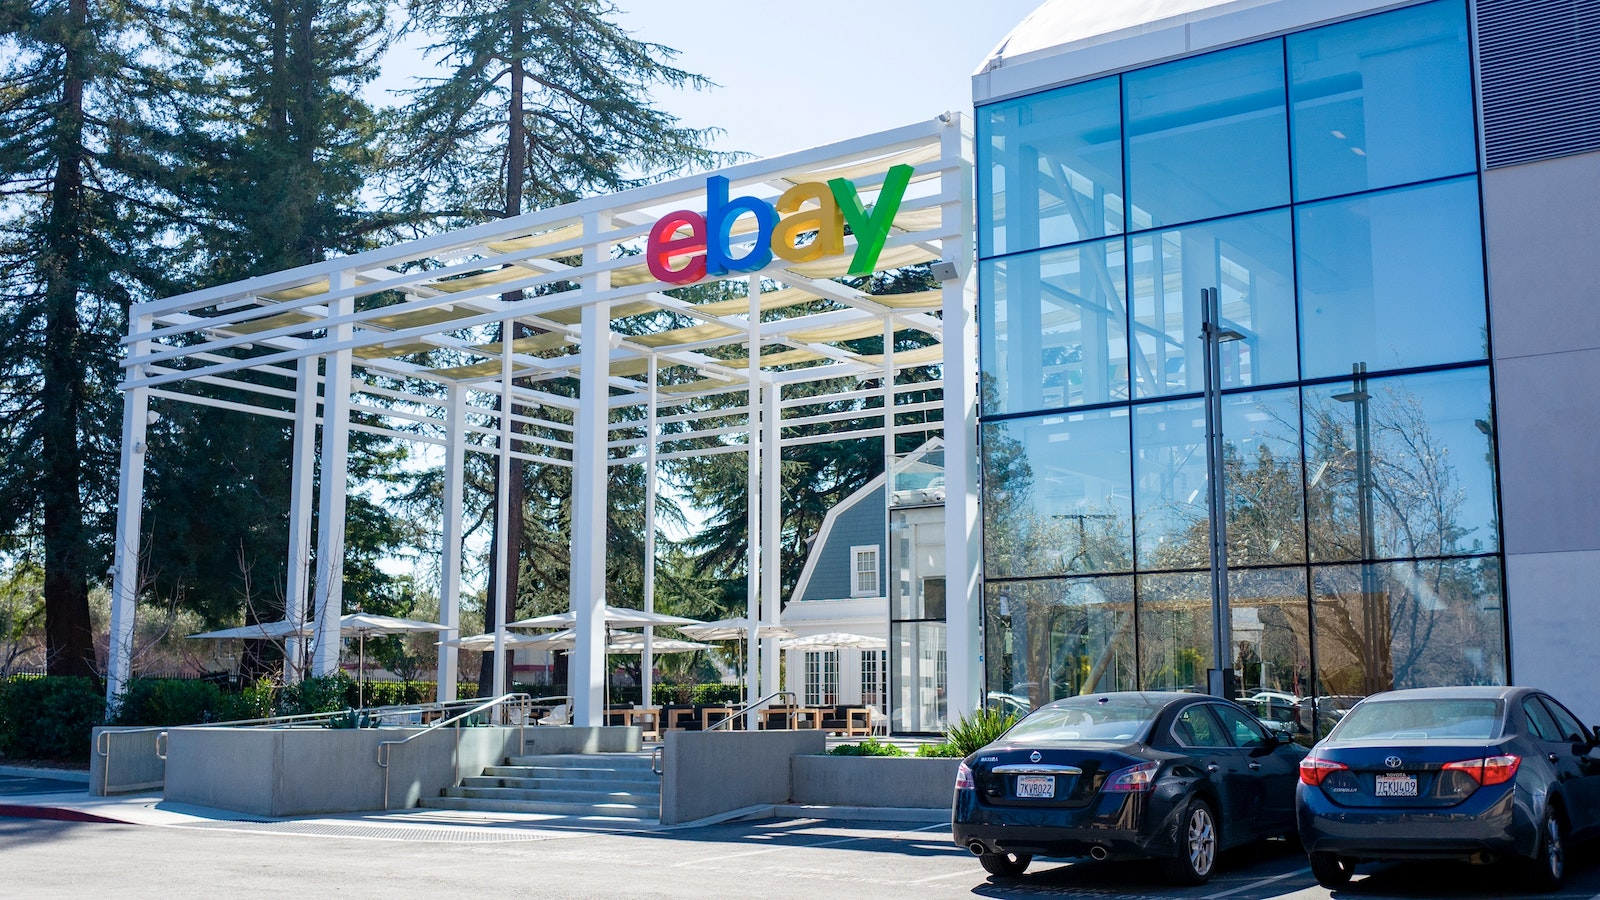 eBay's Silicon Valley headquarters. Photo by AP